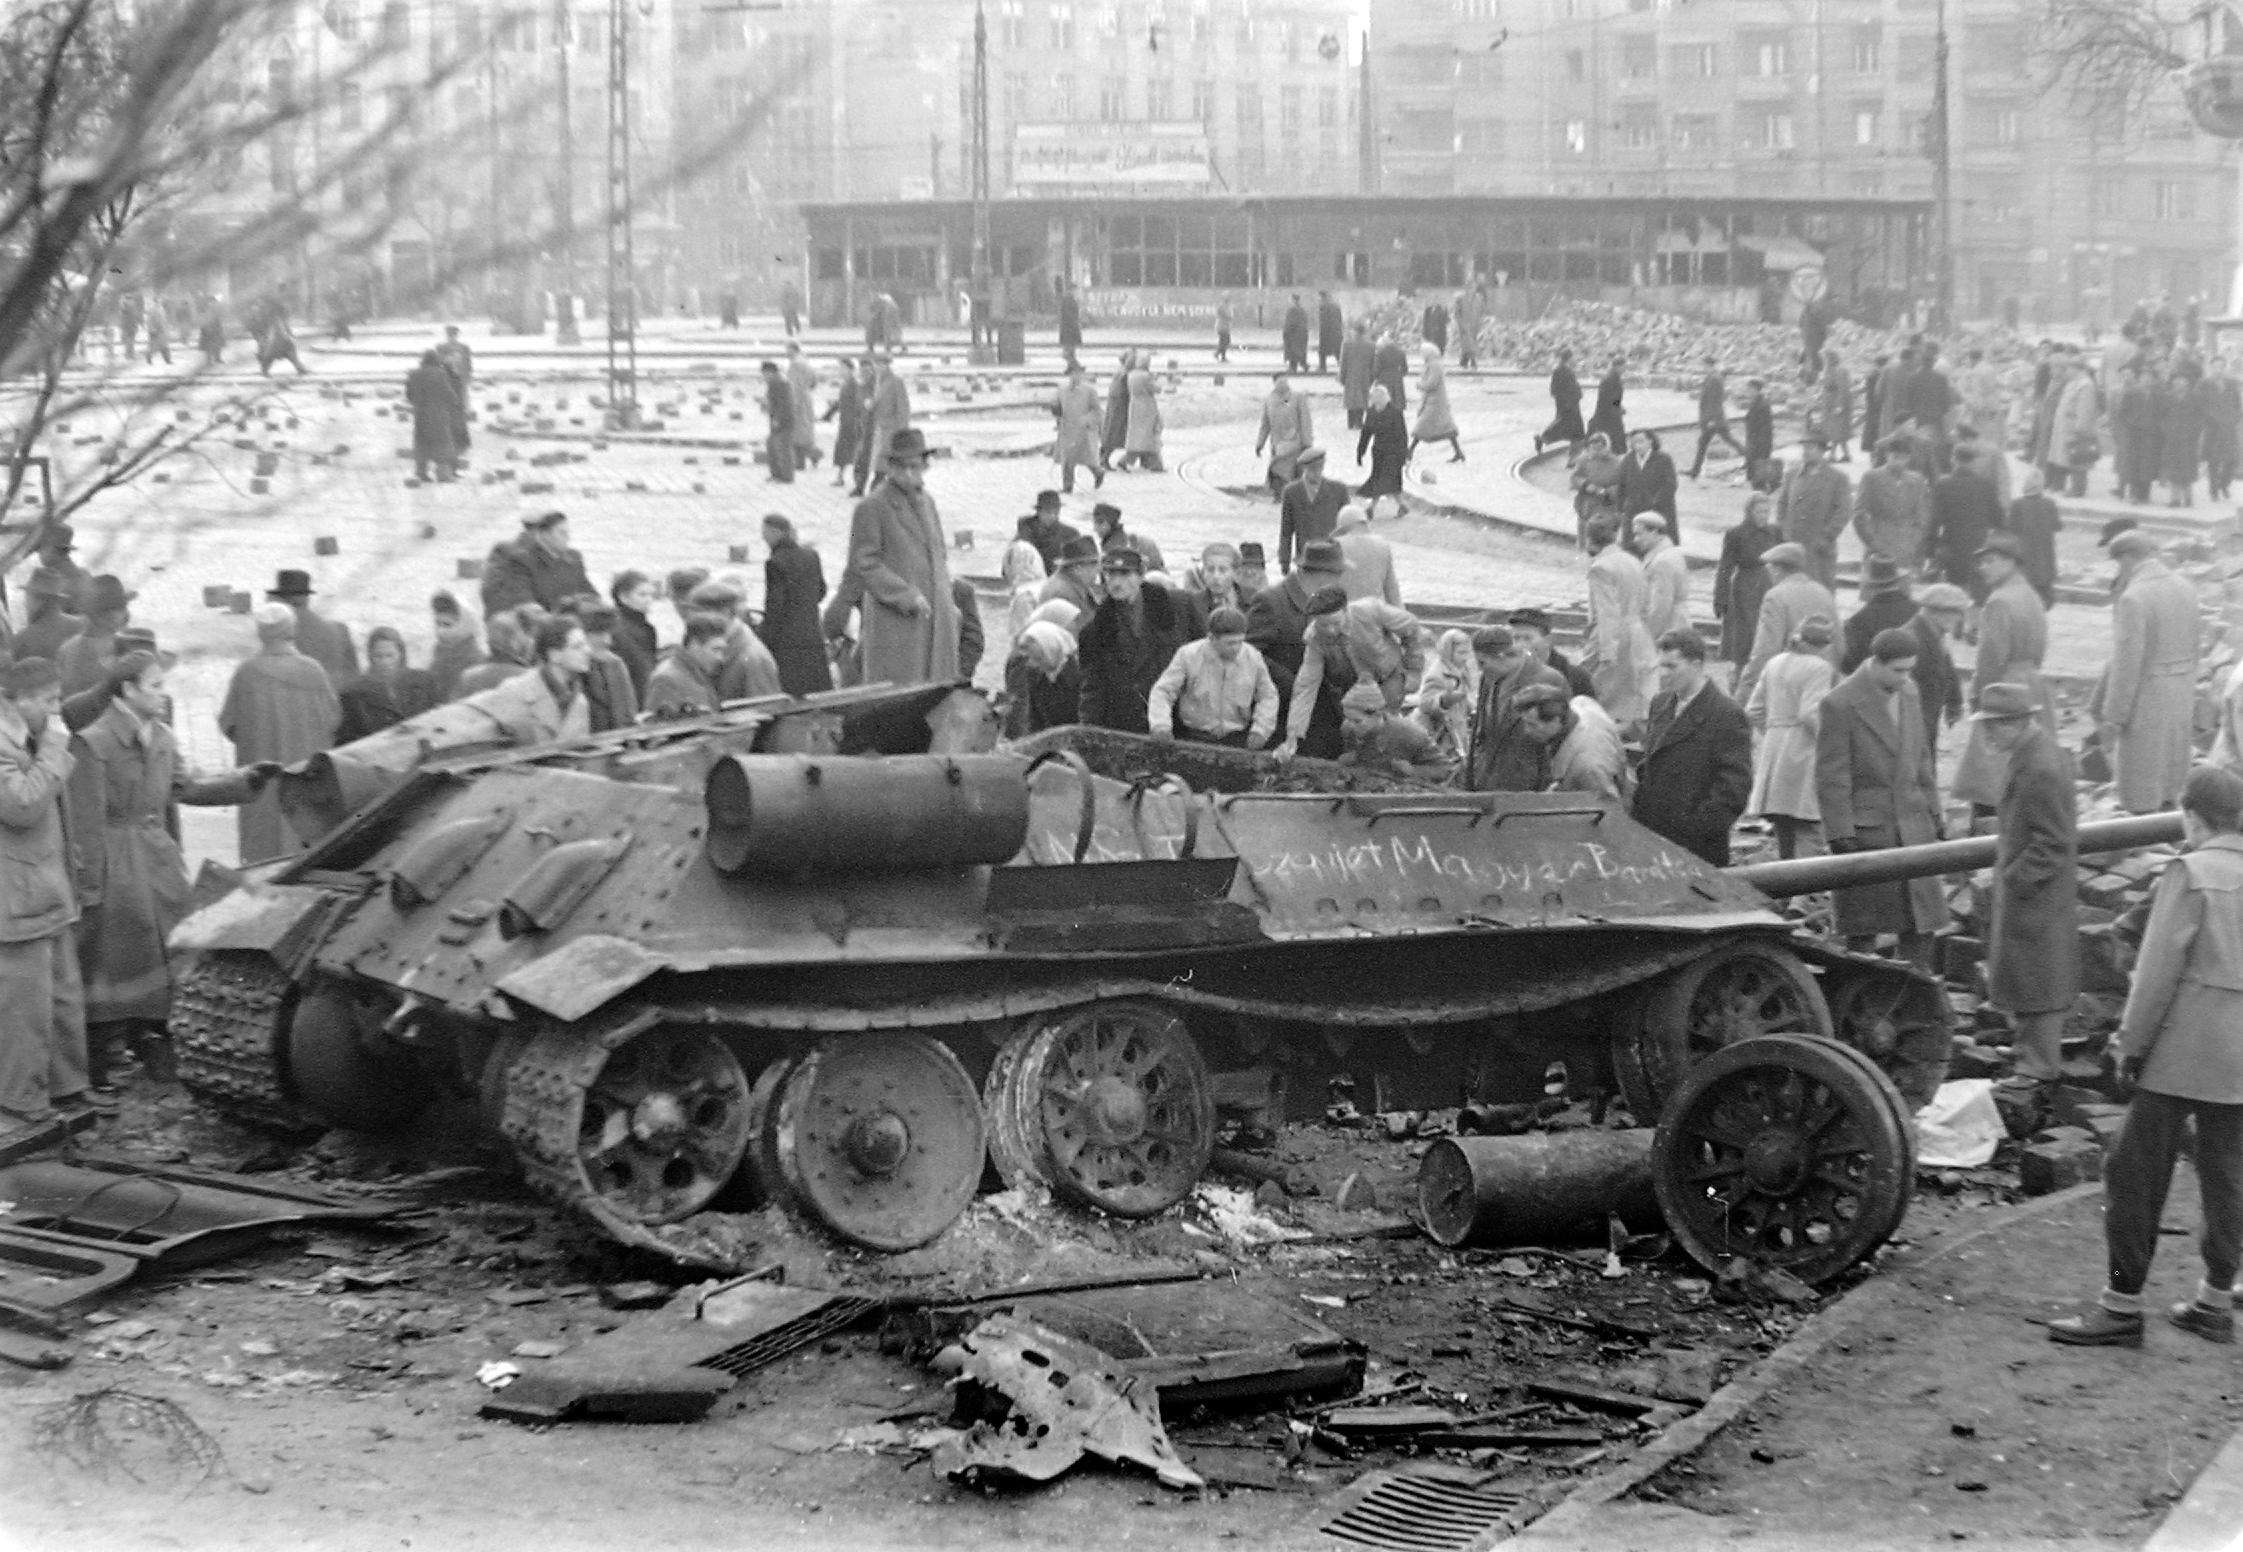 Xpat Insights: 1956 Hungarian Revolution, 'Another Hungarian Tragedy'